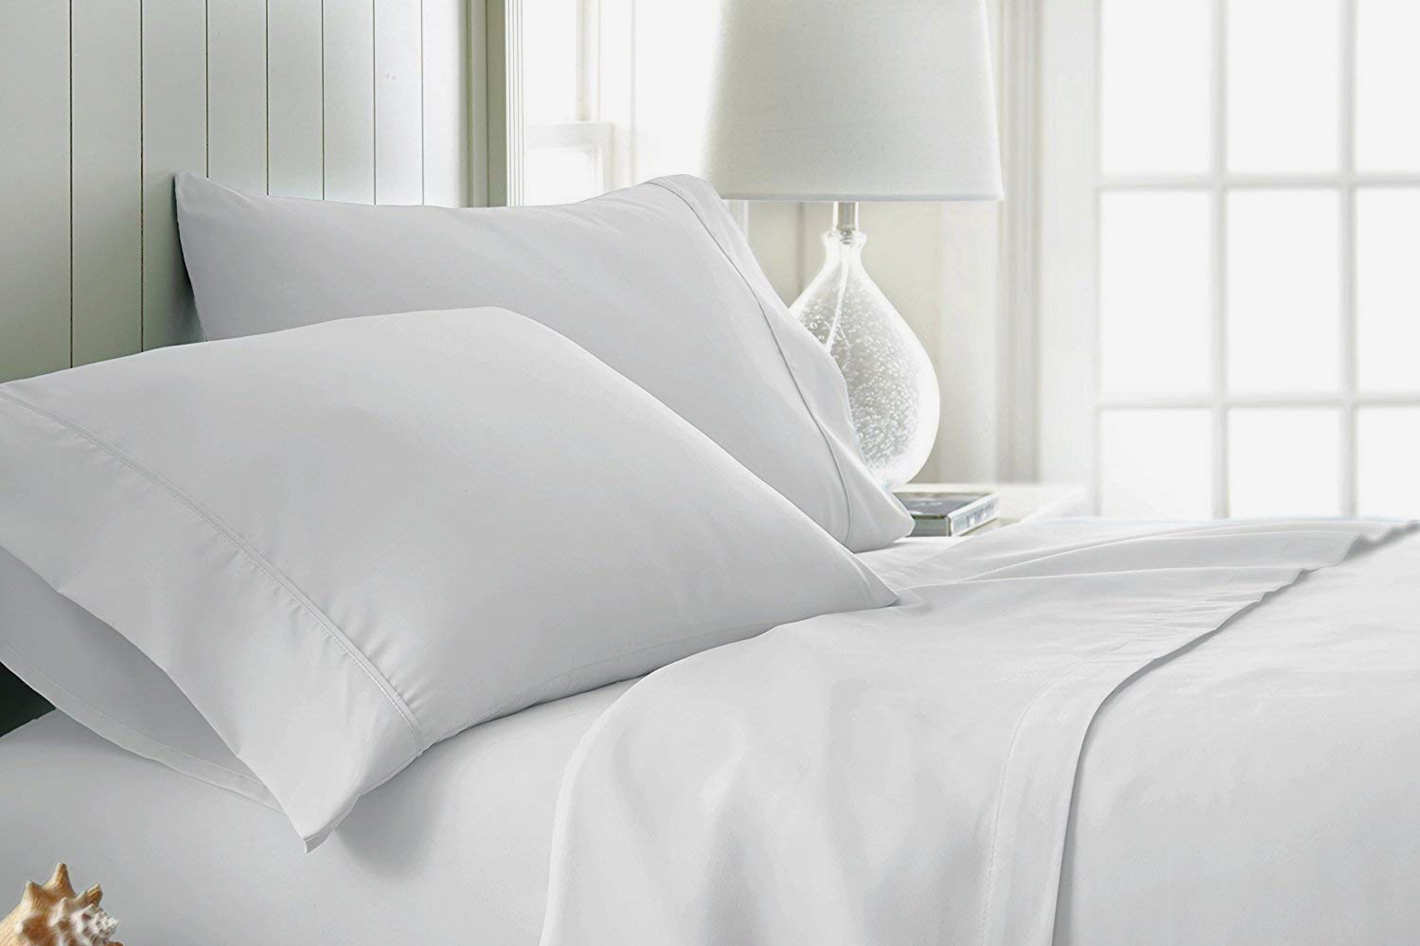 Best Egyptian Cotton Sheets Reviews by www.snoremagazine.com